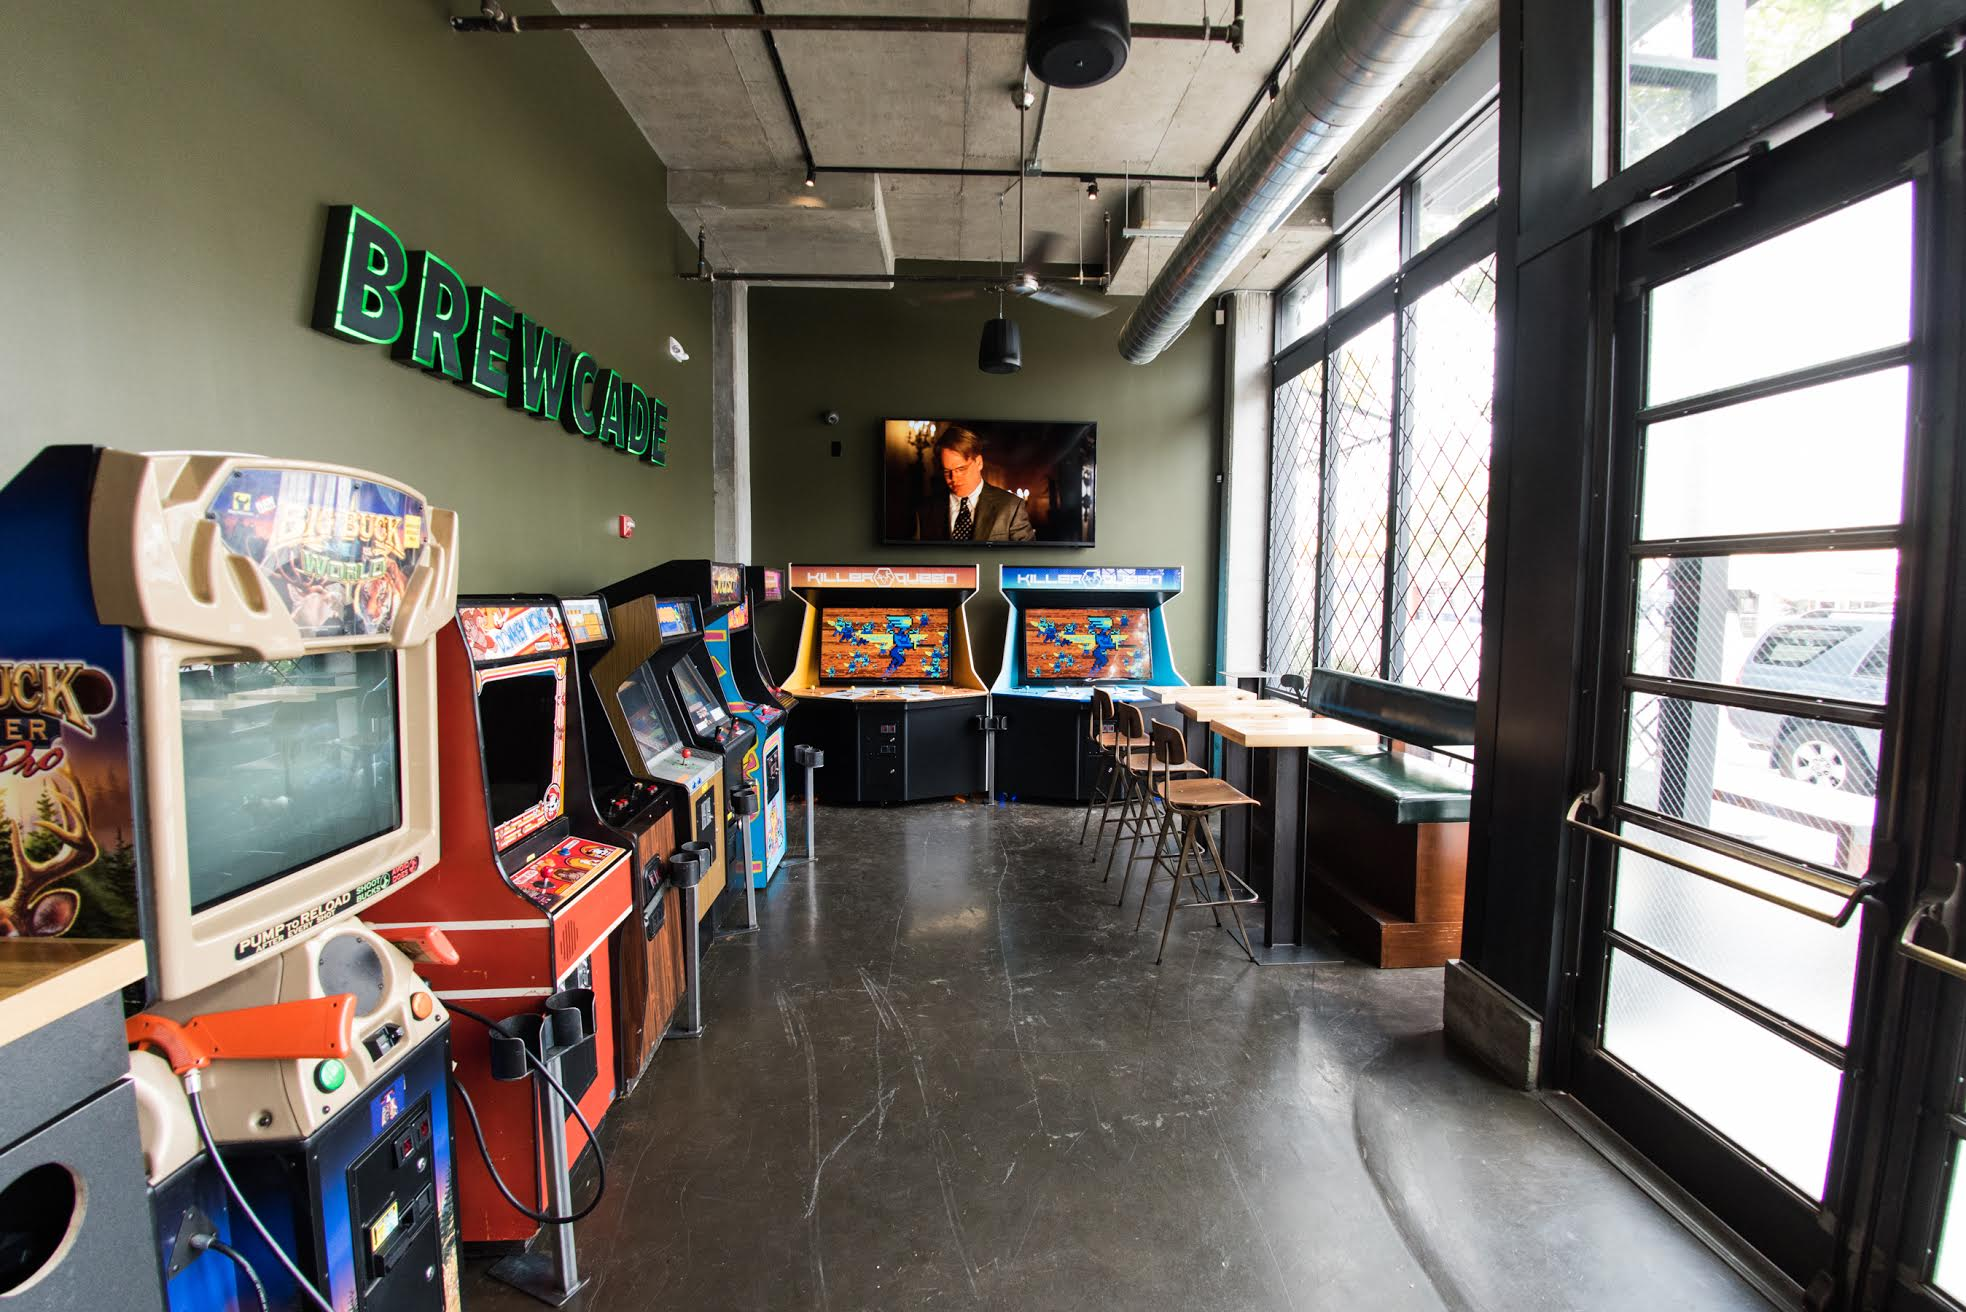 What it's like running an arcade in 2015